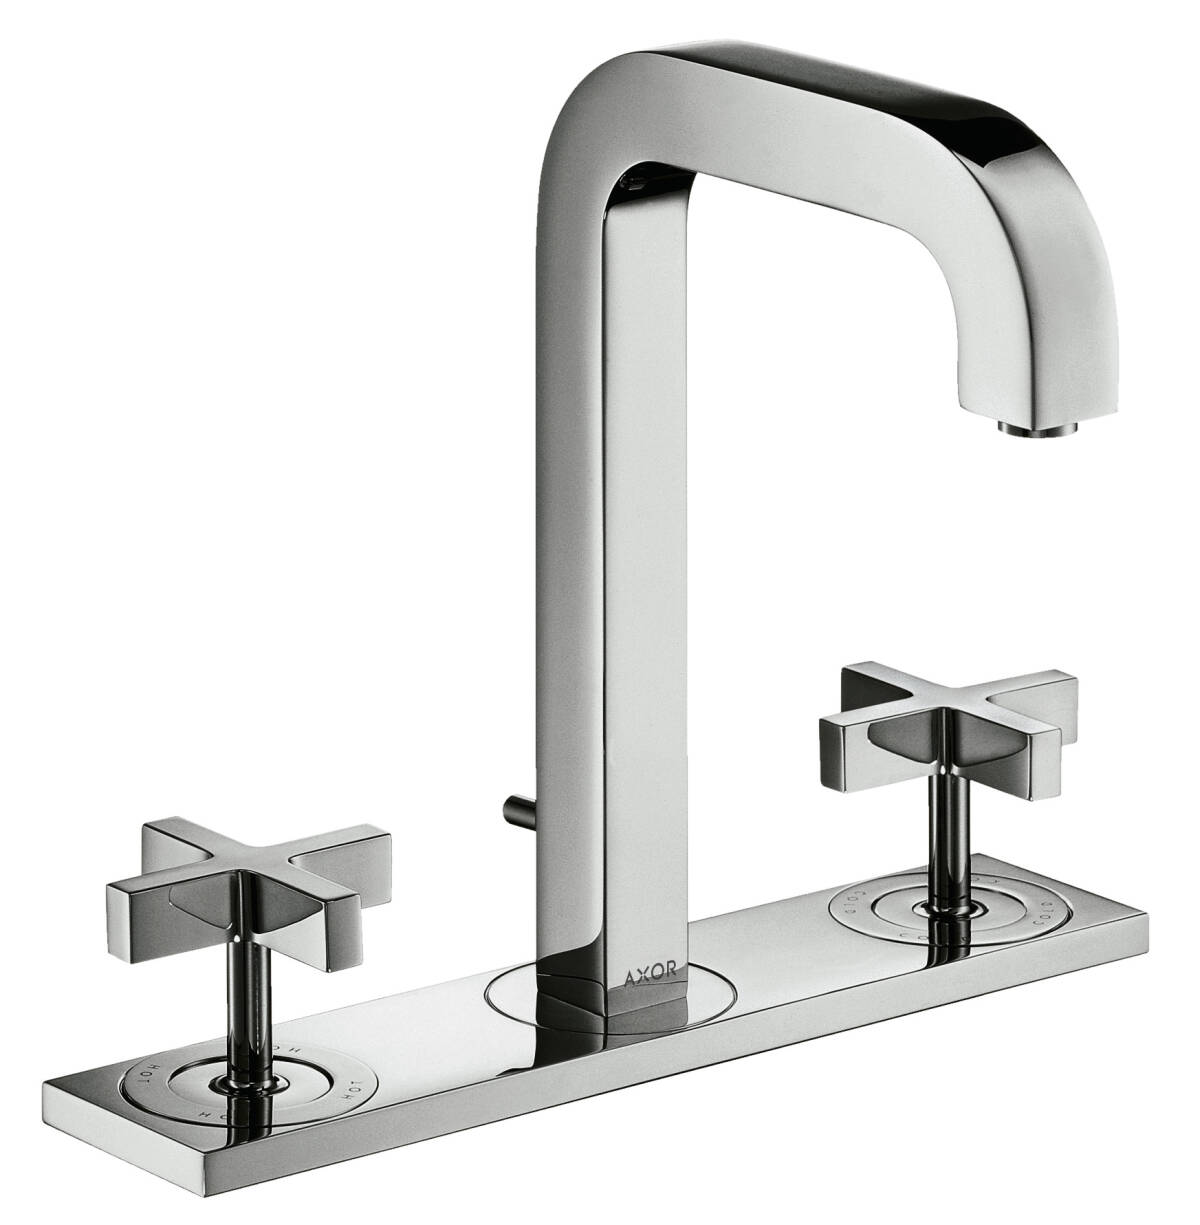 3-hole basin mixer 170 with spout 140 mm, cross handles, plate and pop-up waste set, Brushed Nickel, 39134820